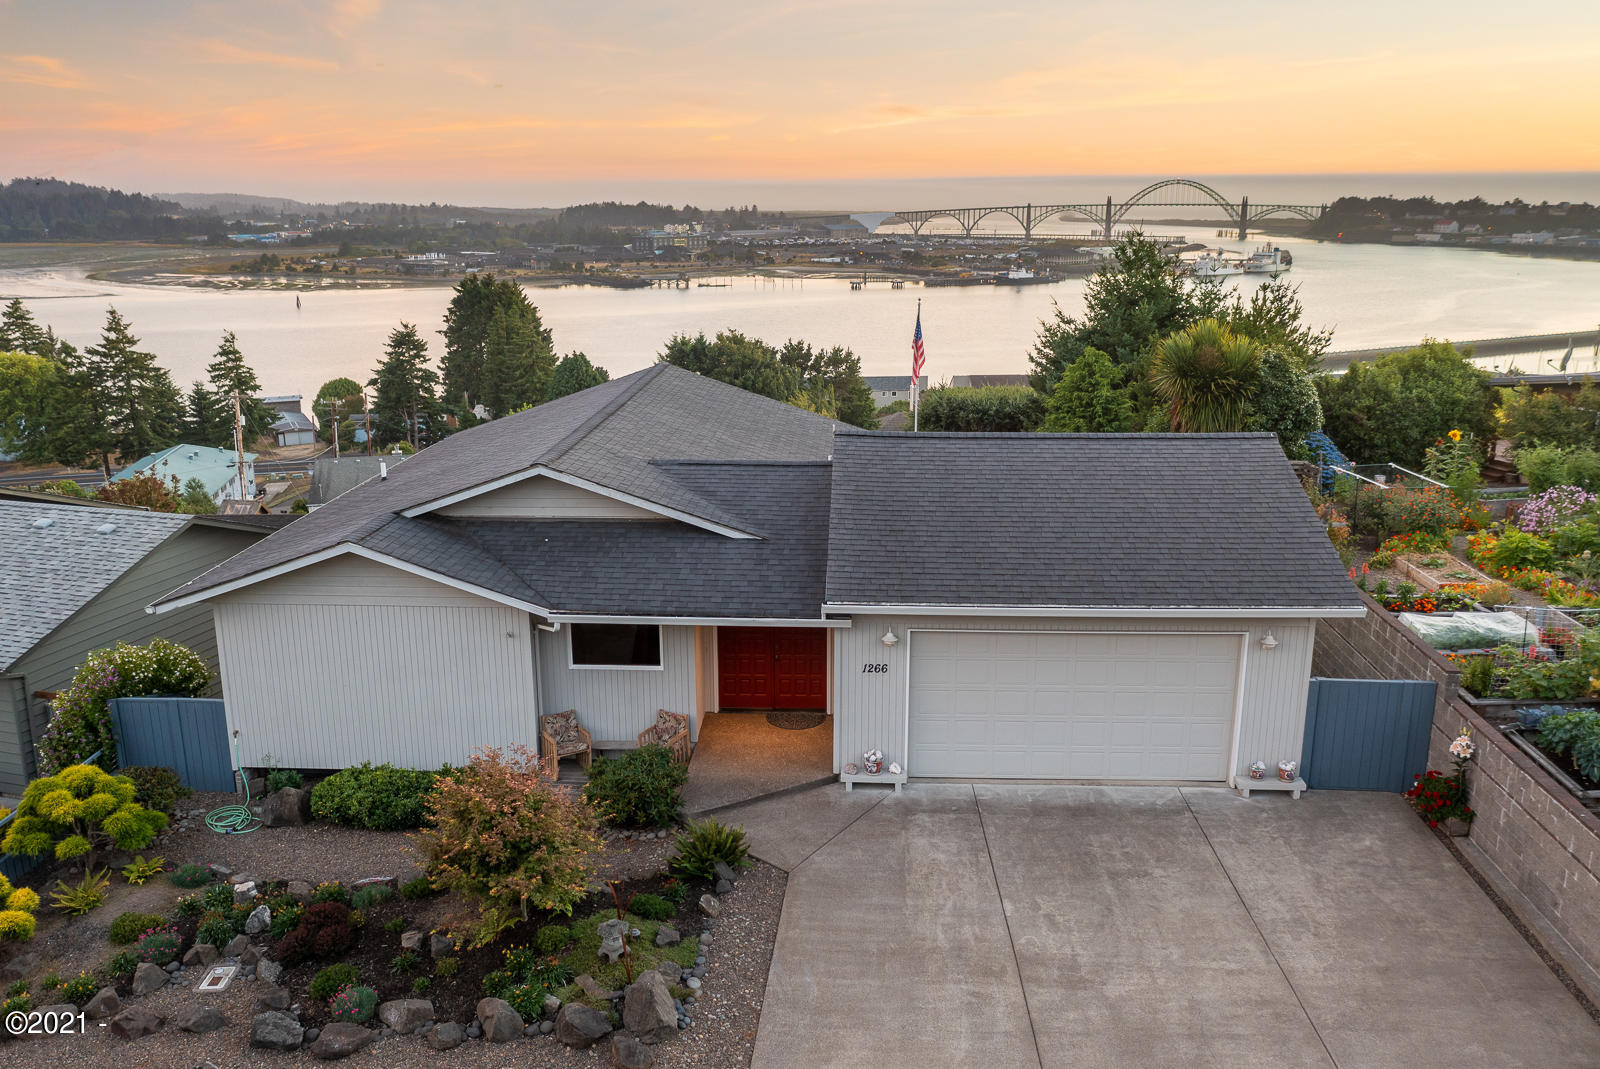 1266 SE Wade Way, Newport, OR 97365 - East side of Home